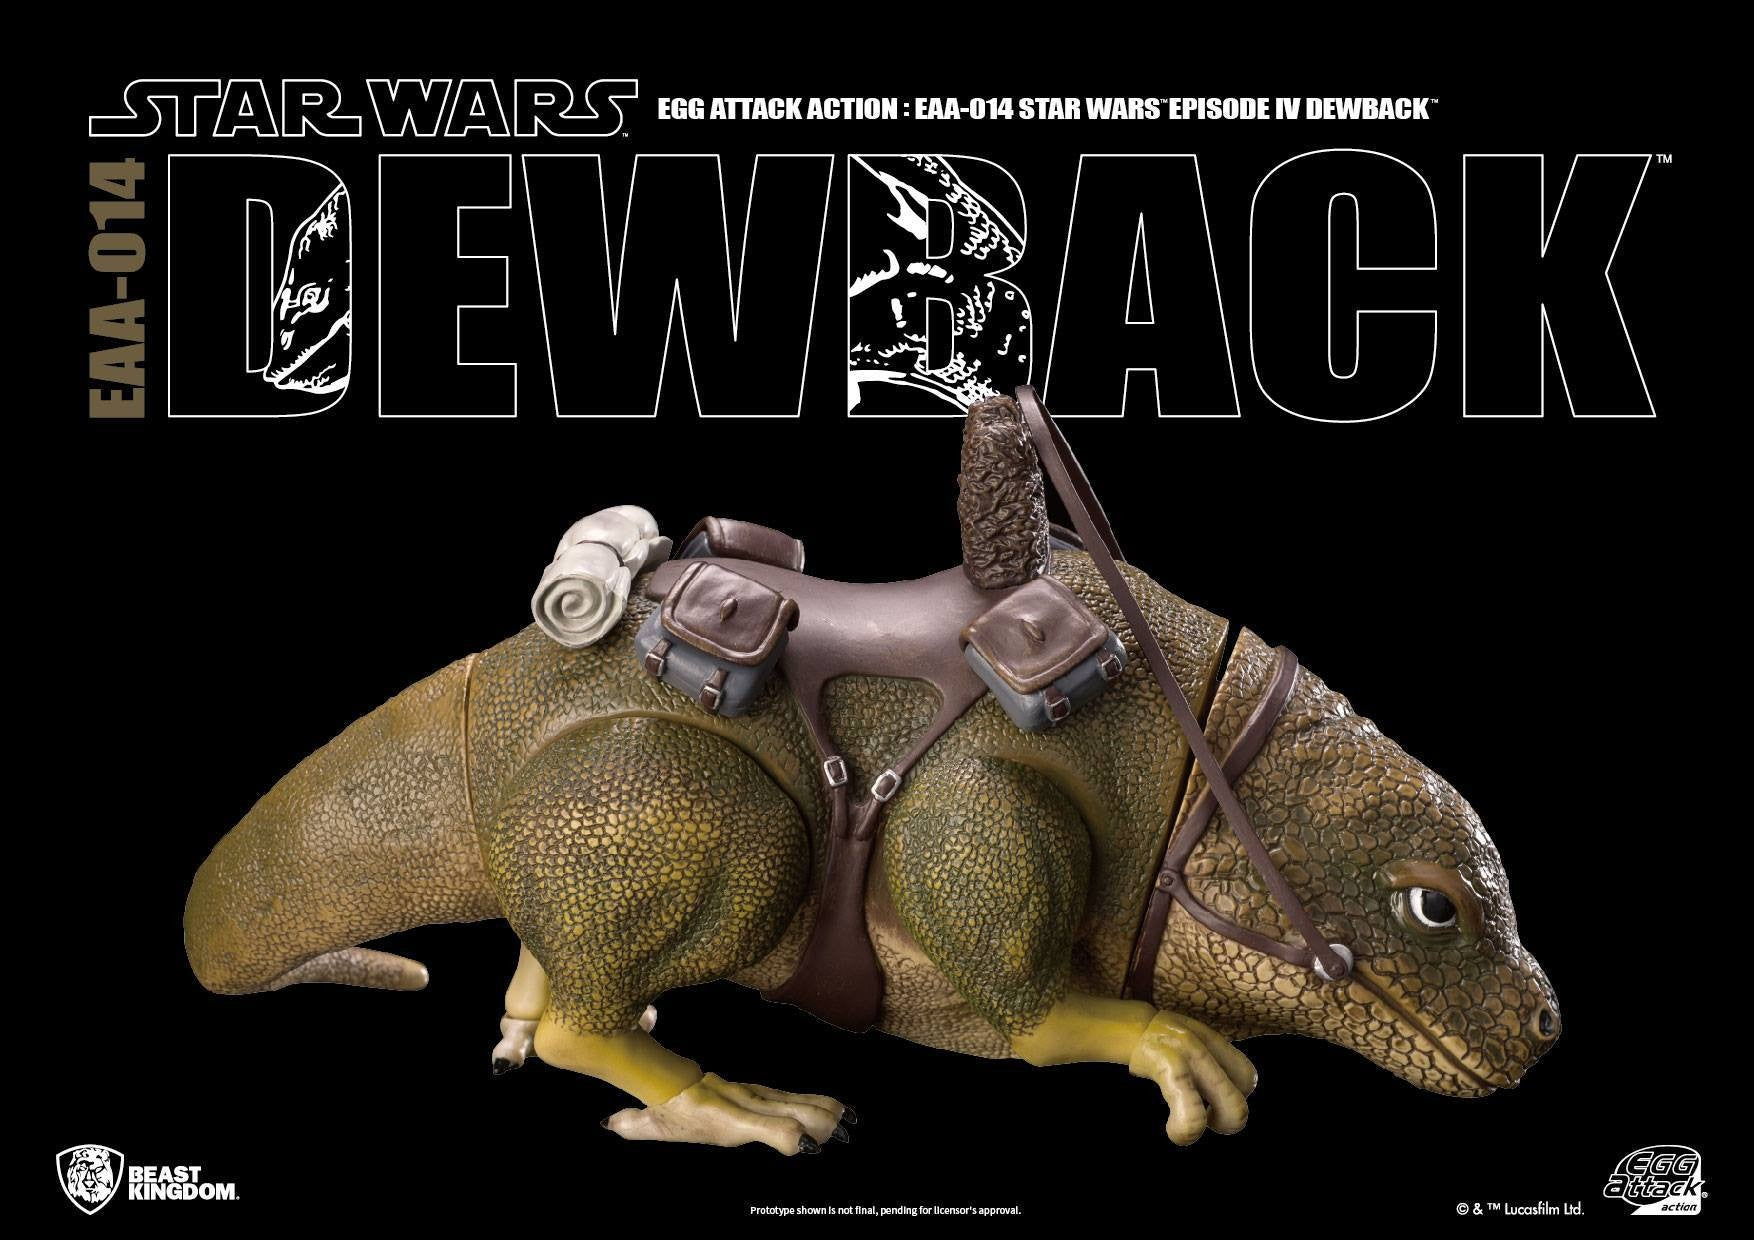 Egg Attack Action - EAA-014 - Star Wars: A New Hope - Dewback - Marvelous Toys - 4